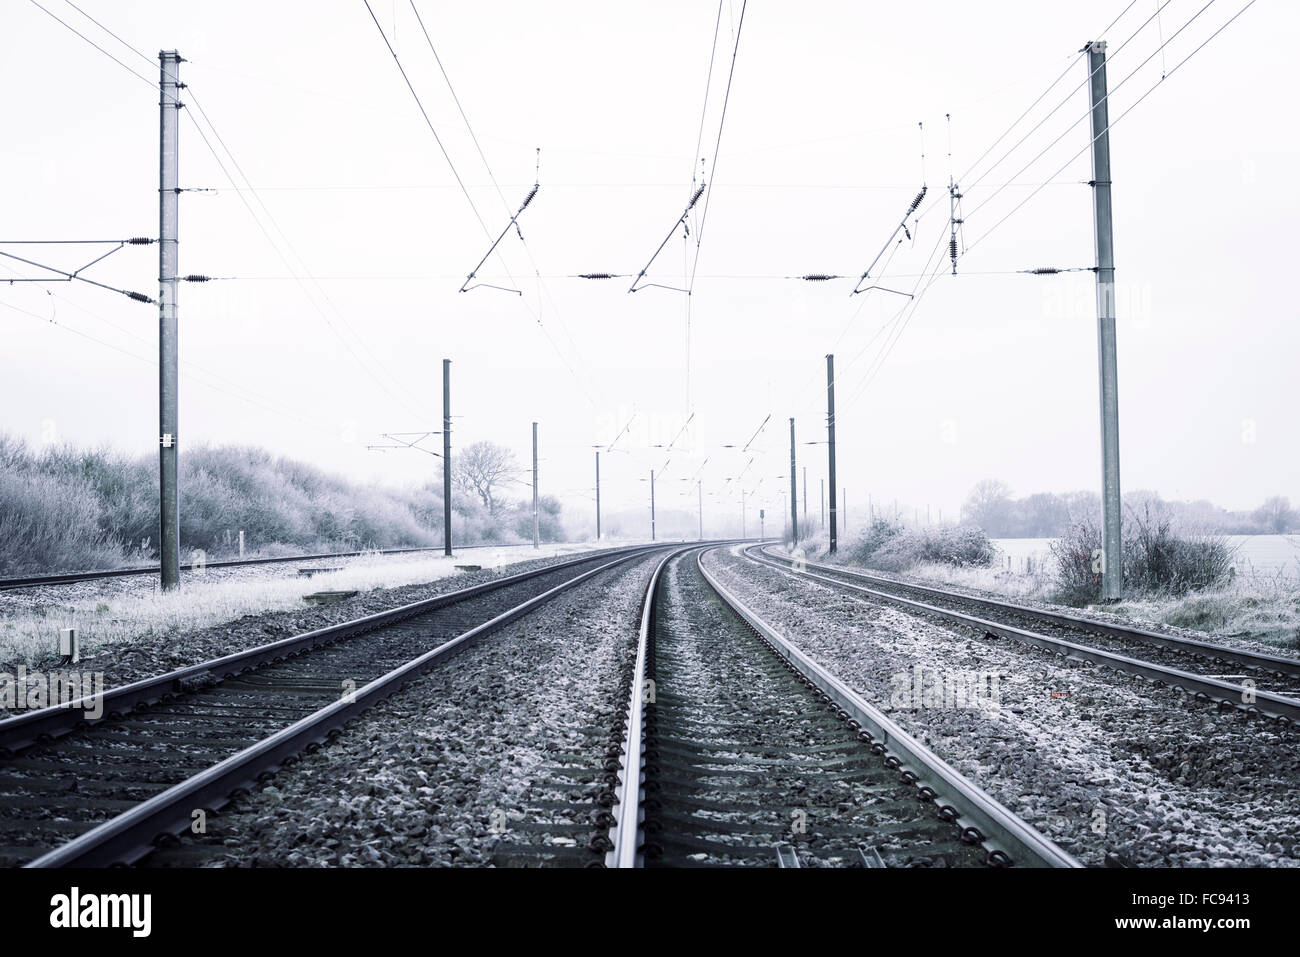 Perspective view down the train tracks into the distance on an frosty morning. Ice on the tracks and overhead cables - Stock Image